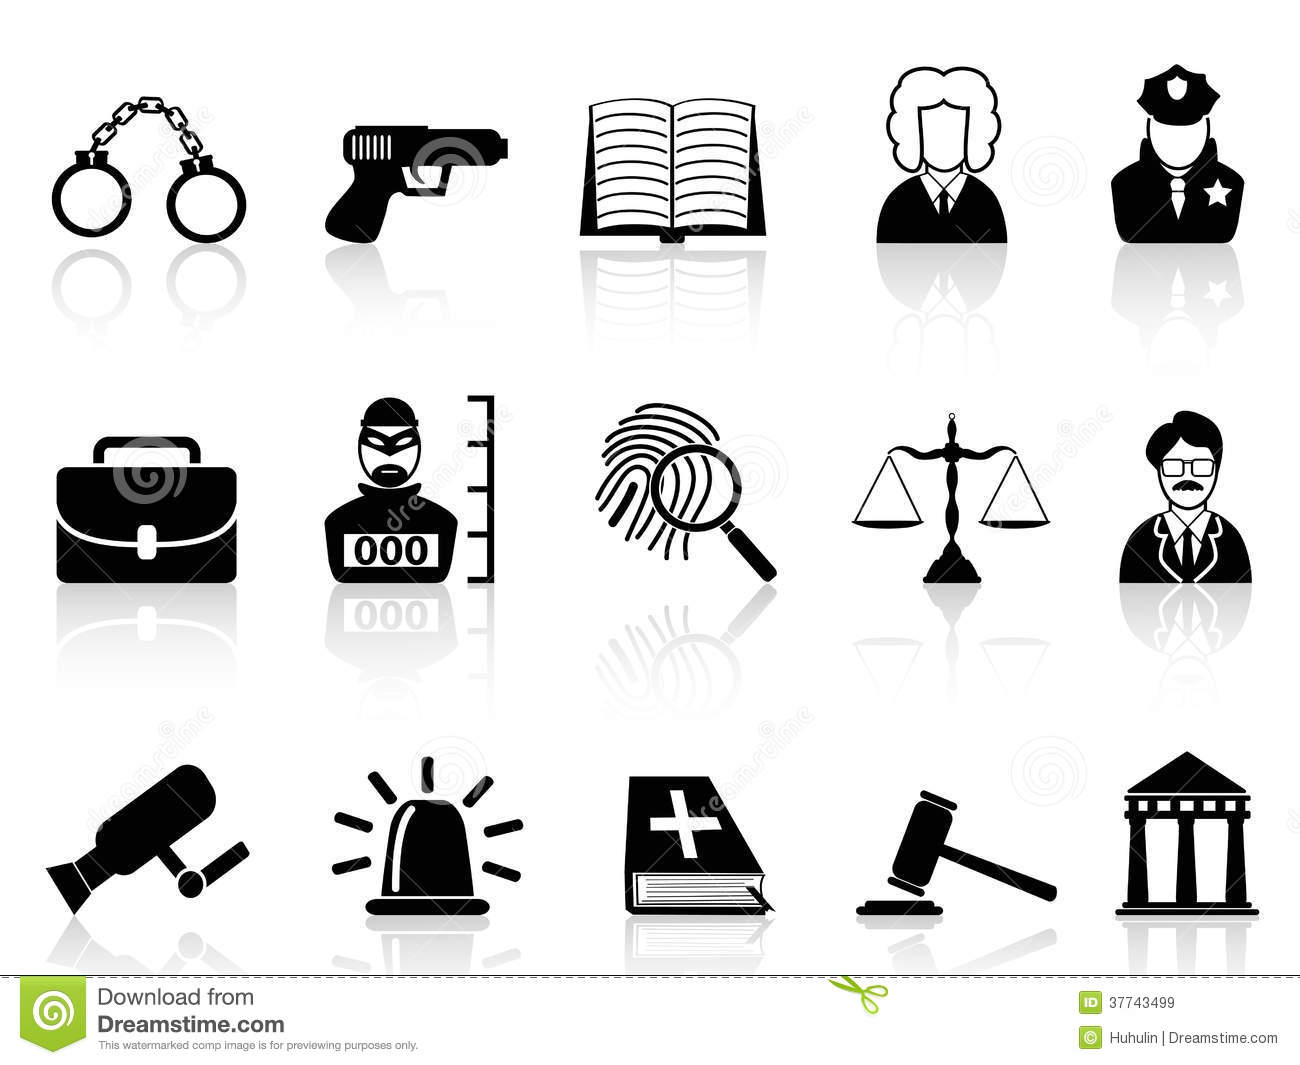 law and justice icons set royalty free stock images Black and White Checks and Balances Clip Art Scales of Justice Symbol